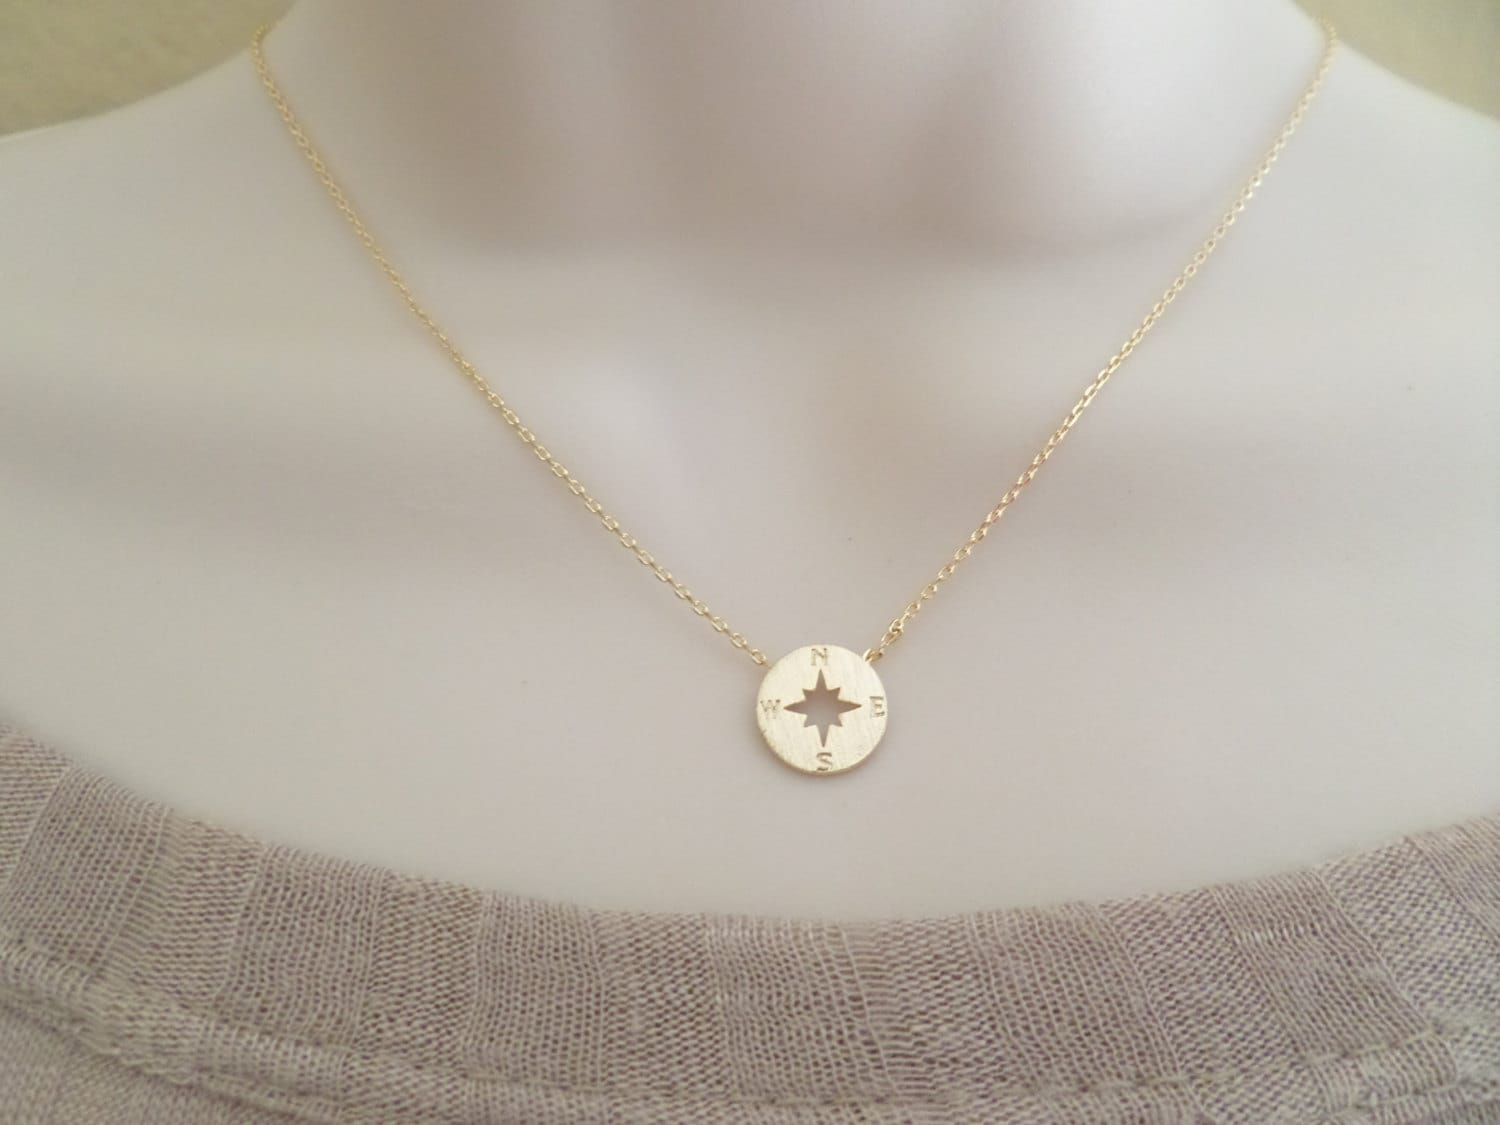 birth gold tiny pendant amazon com jewelry necklace necklaces month chain simple zodiac charm filled with dp gemini